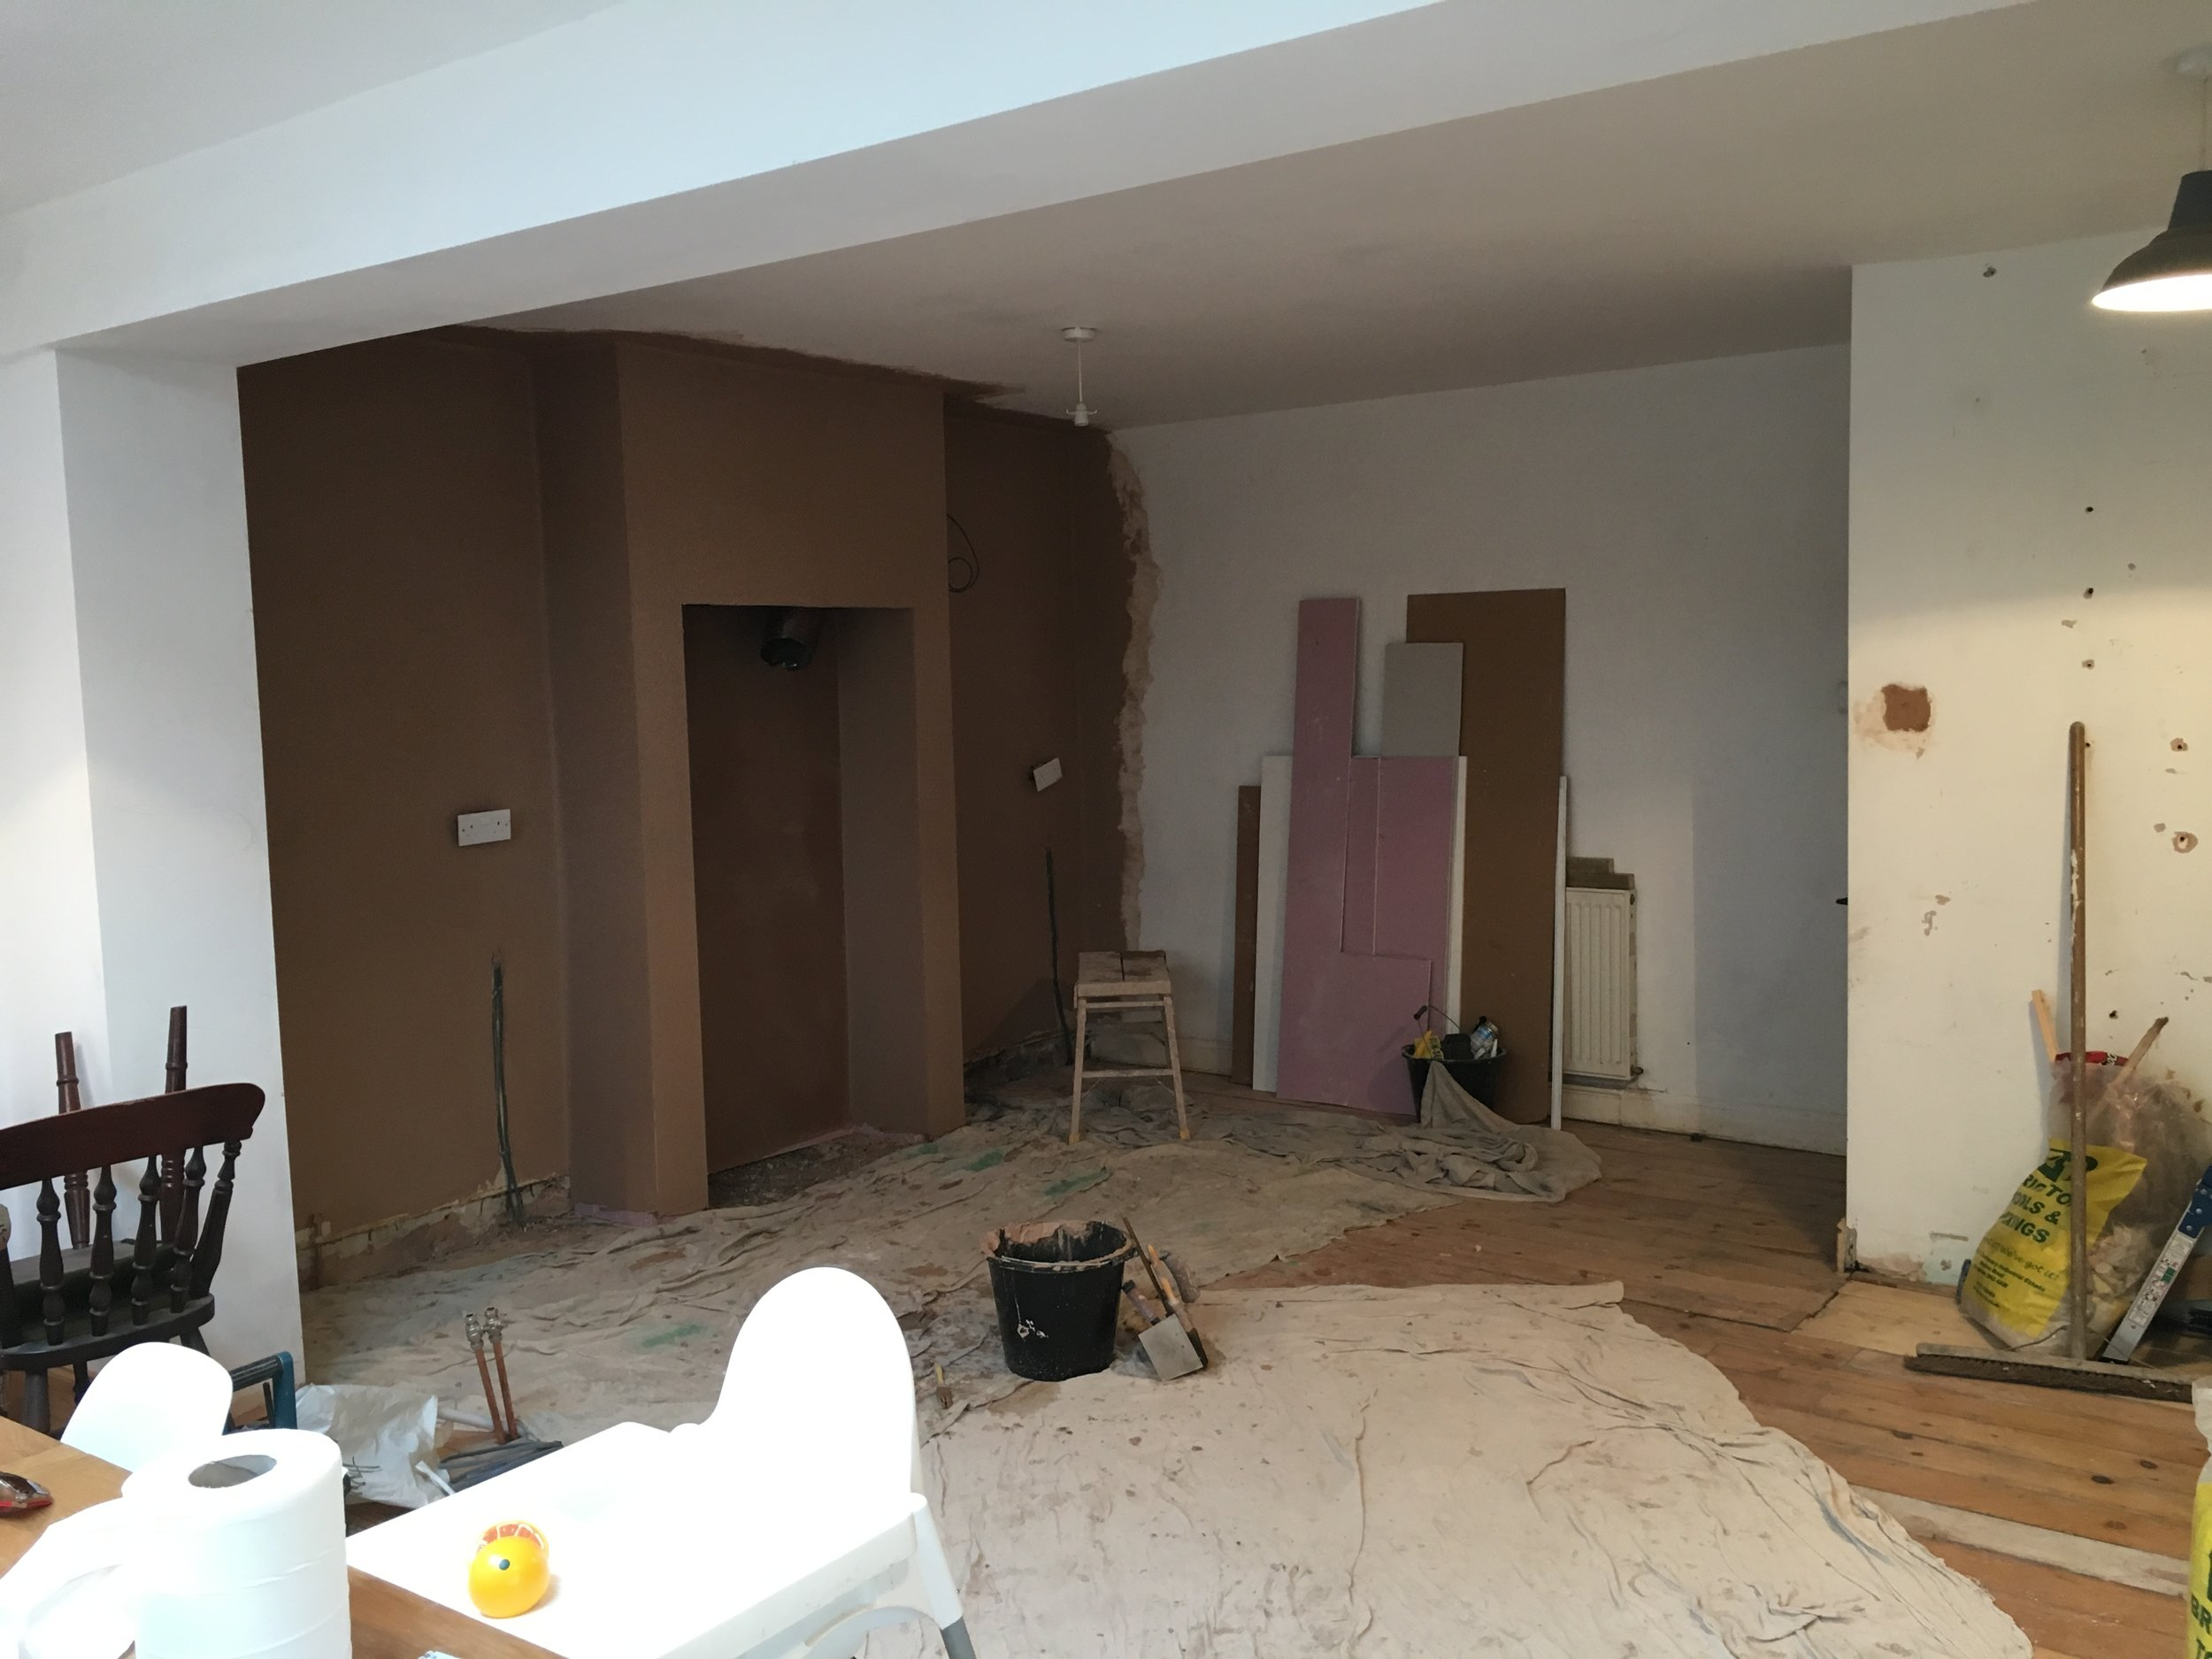 Looking back at the kitchen area from the dining space